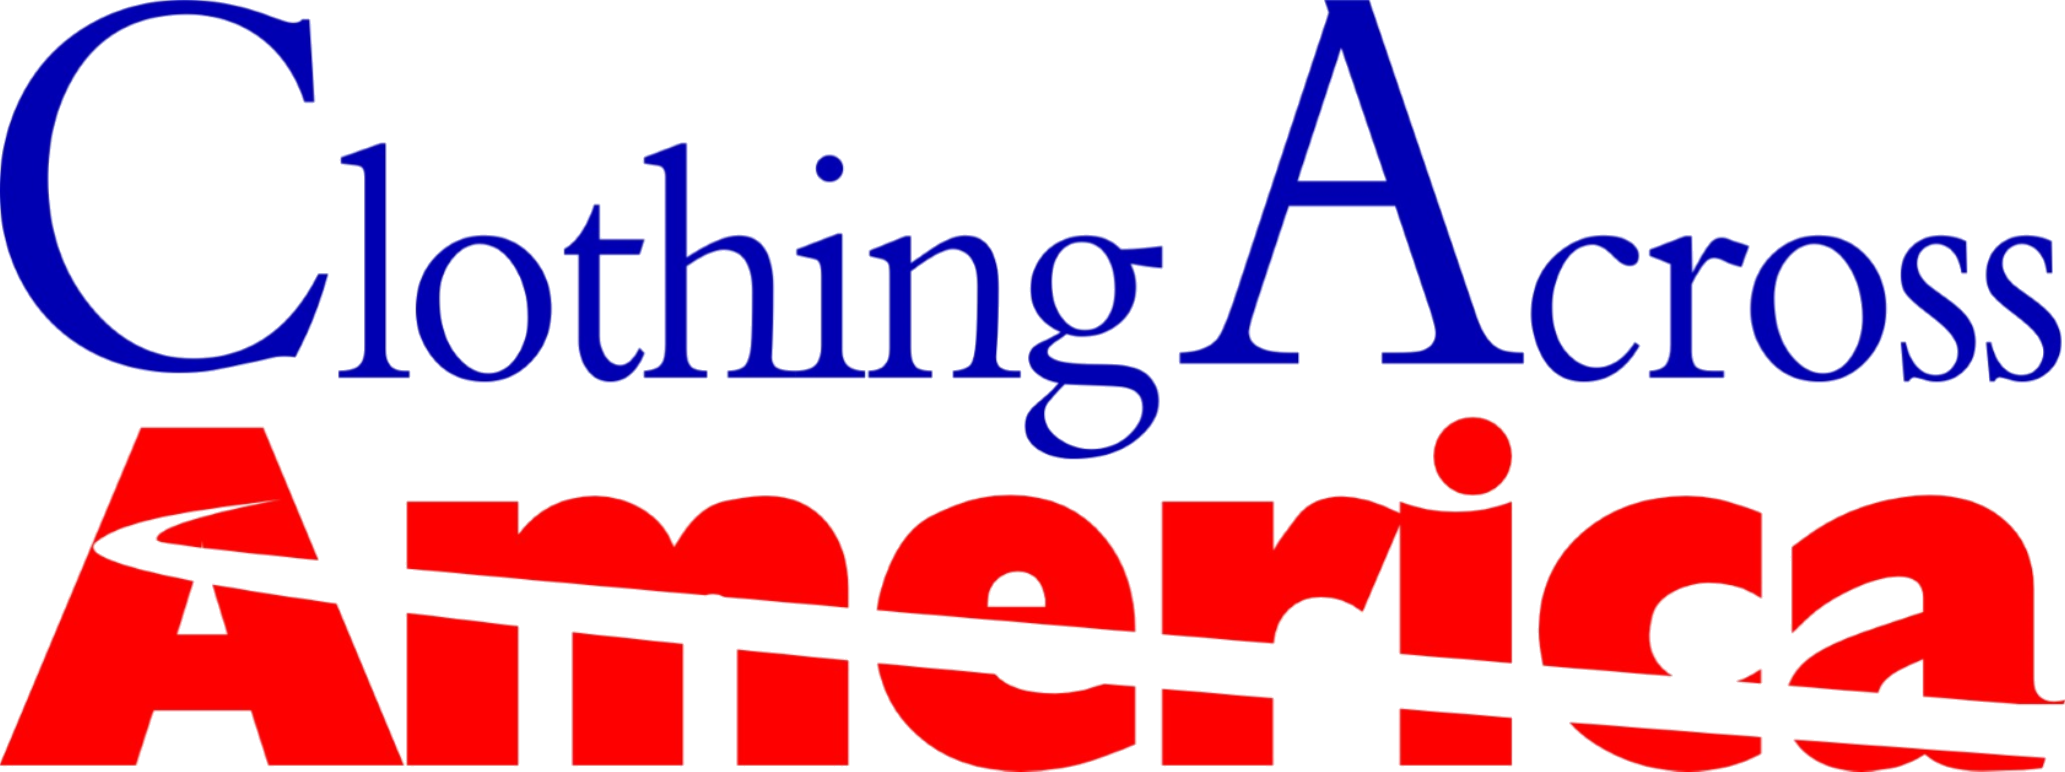 Clothing Across America logo.png